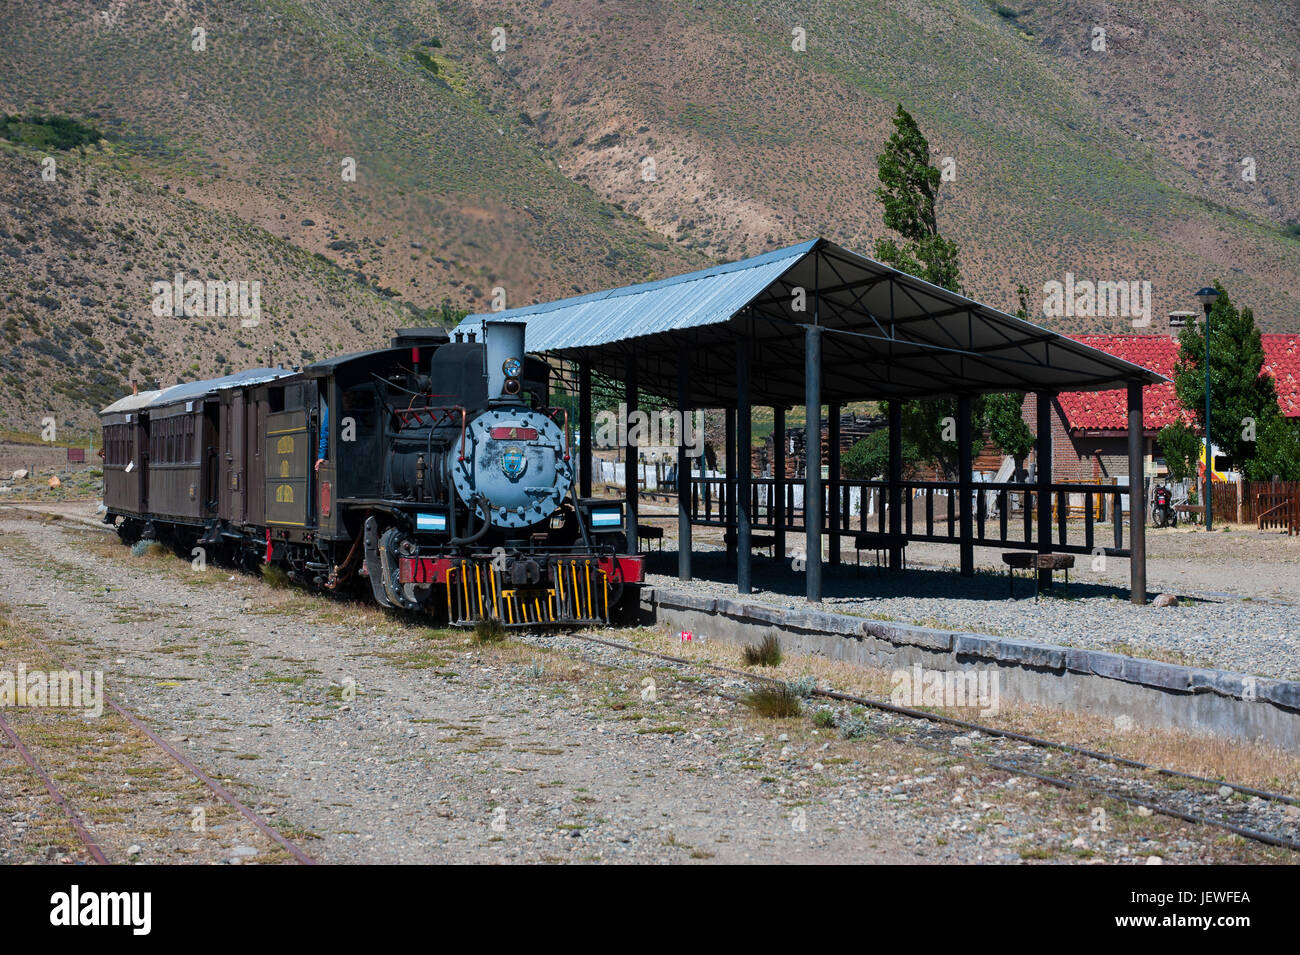 Train station of La Trochita the Old Patagonian Express  between Esquel and El Maitén in Chubut Province, Argentina, - Stock Image